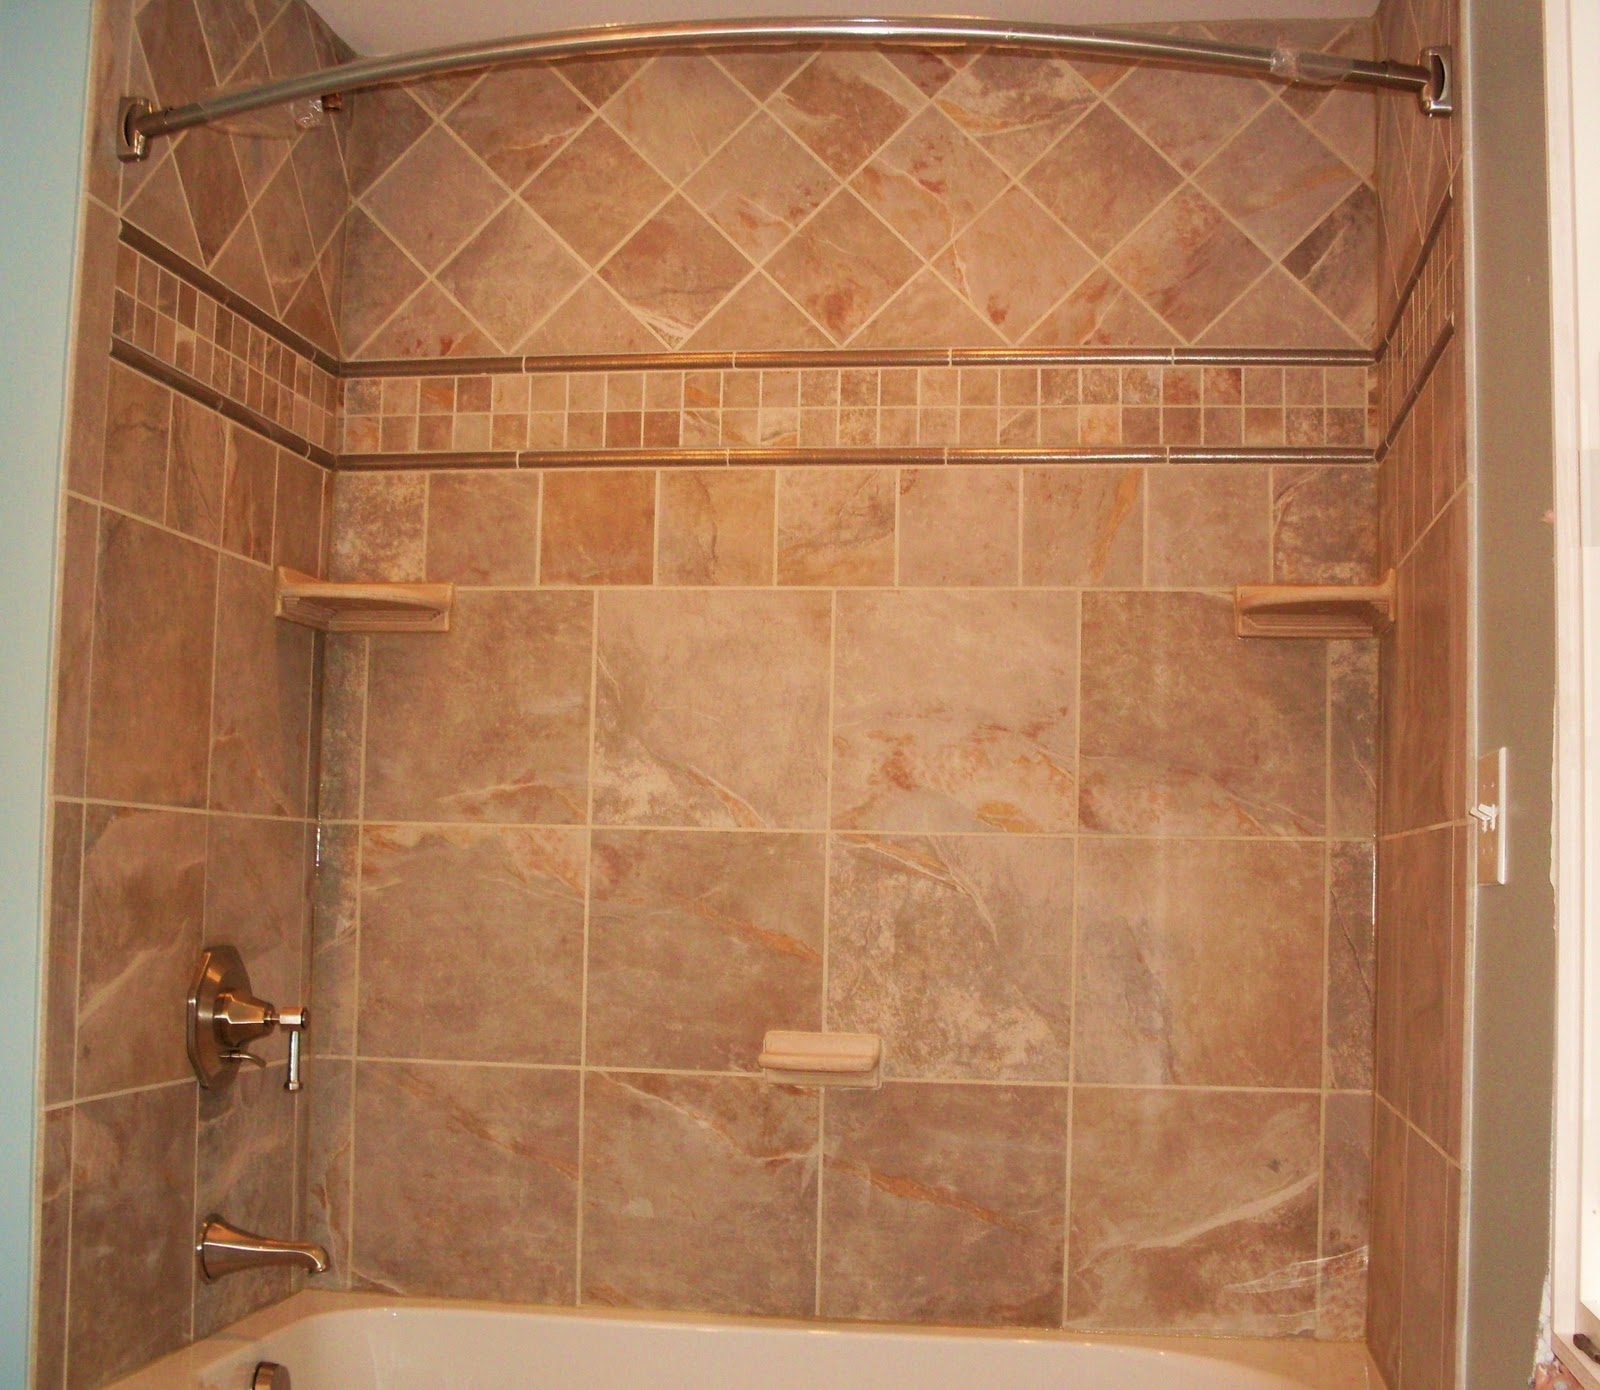 Remodel ideas on pinterest tile tub surround tub for Bathroom ideas with tub and shower